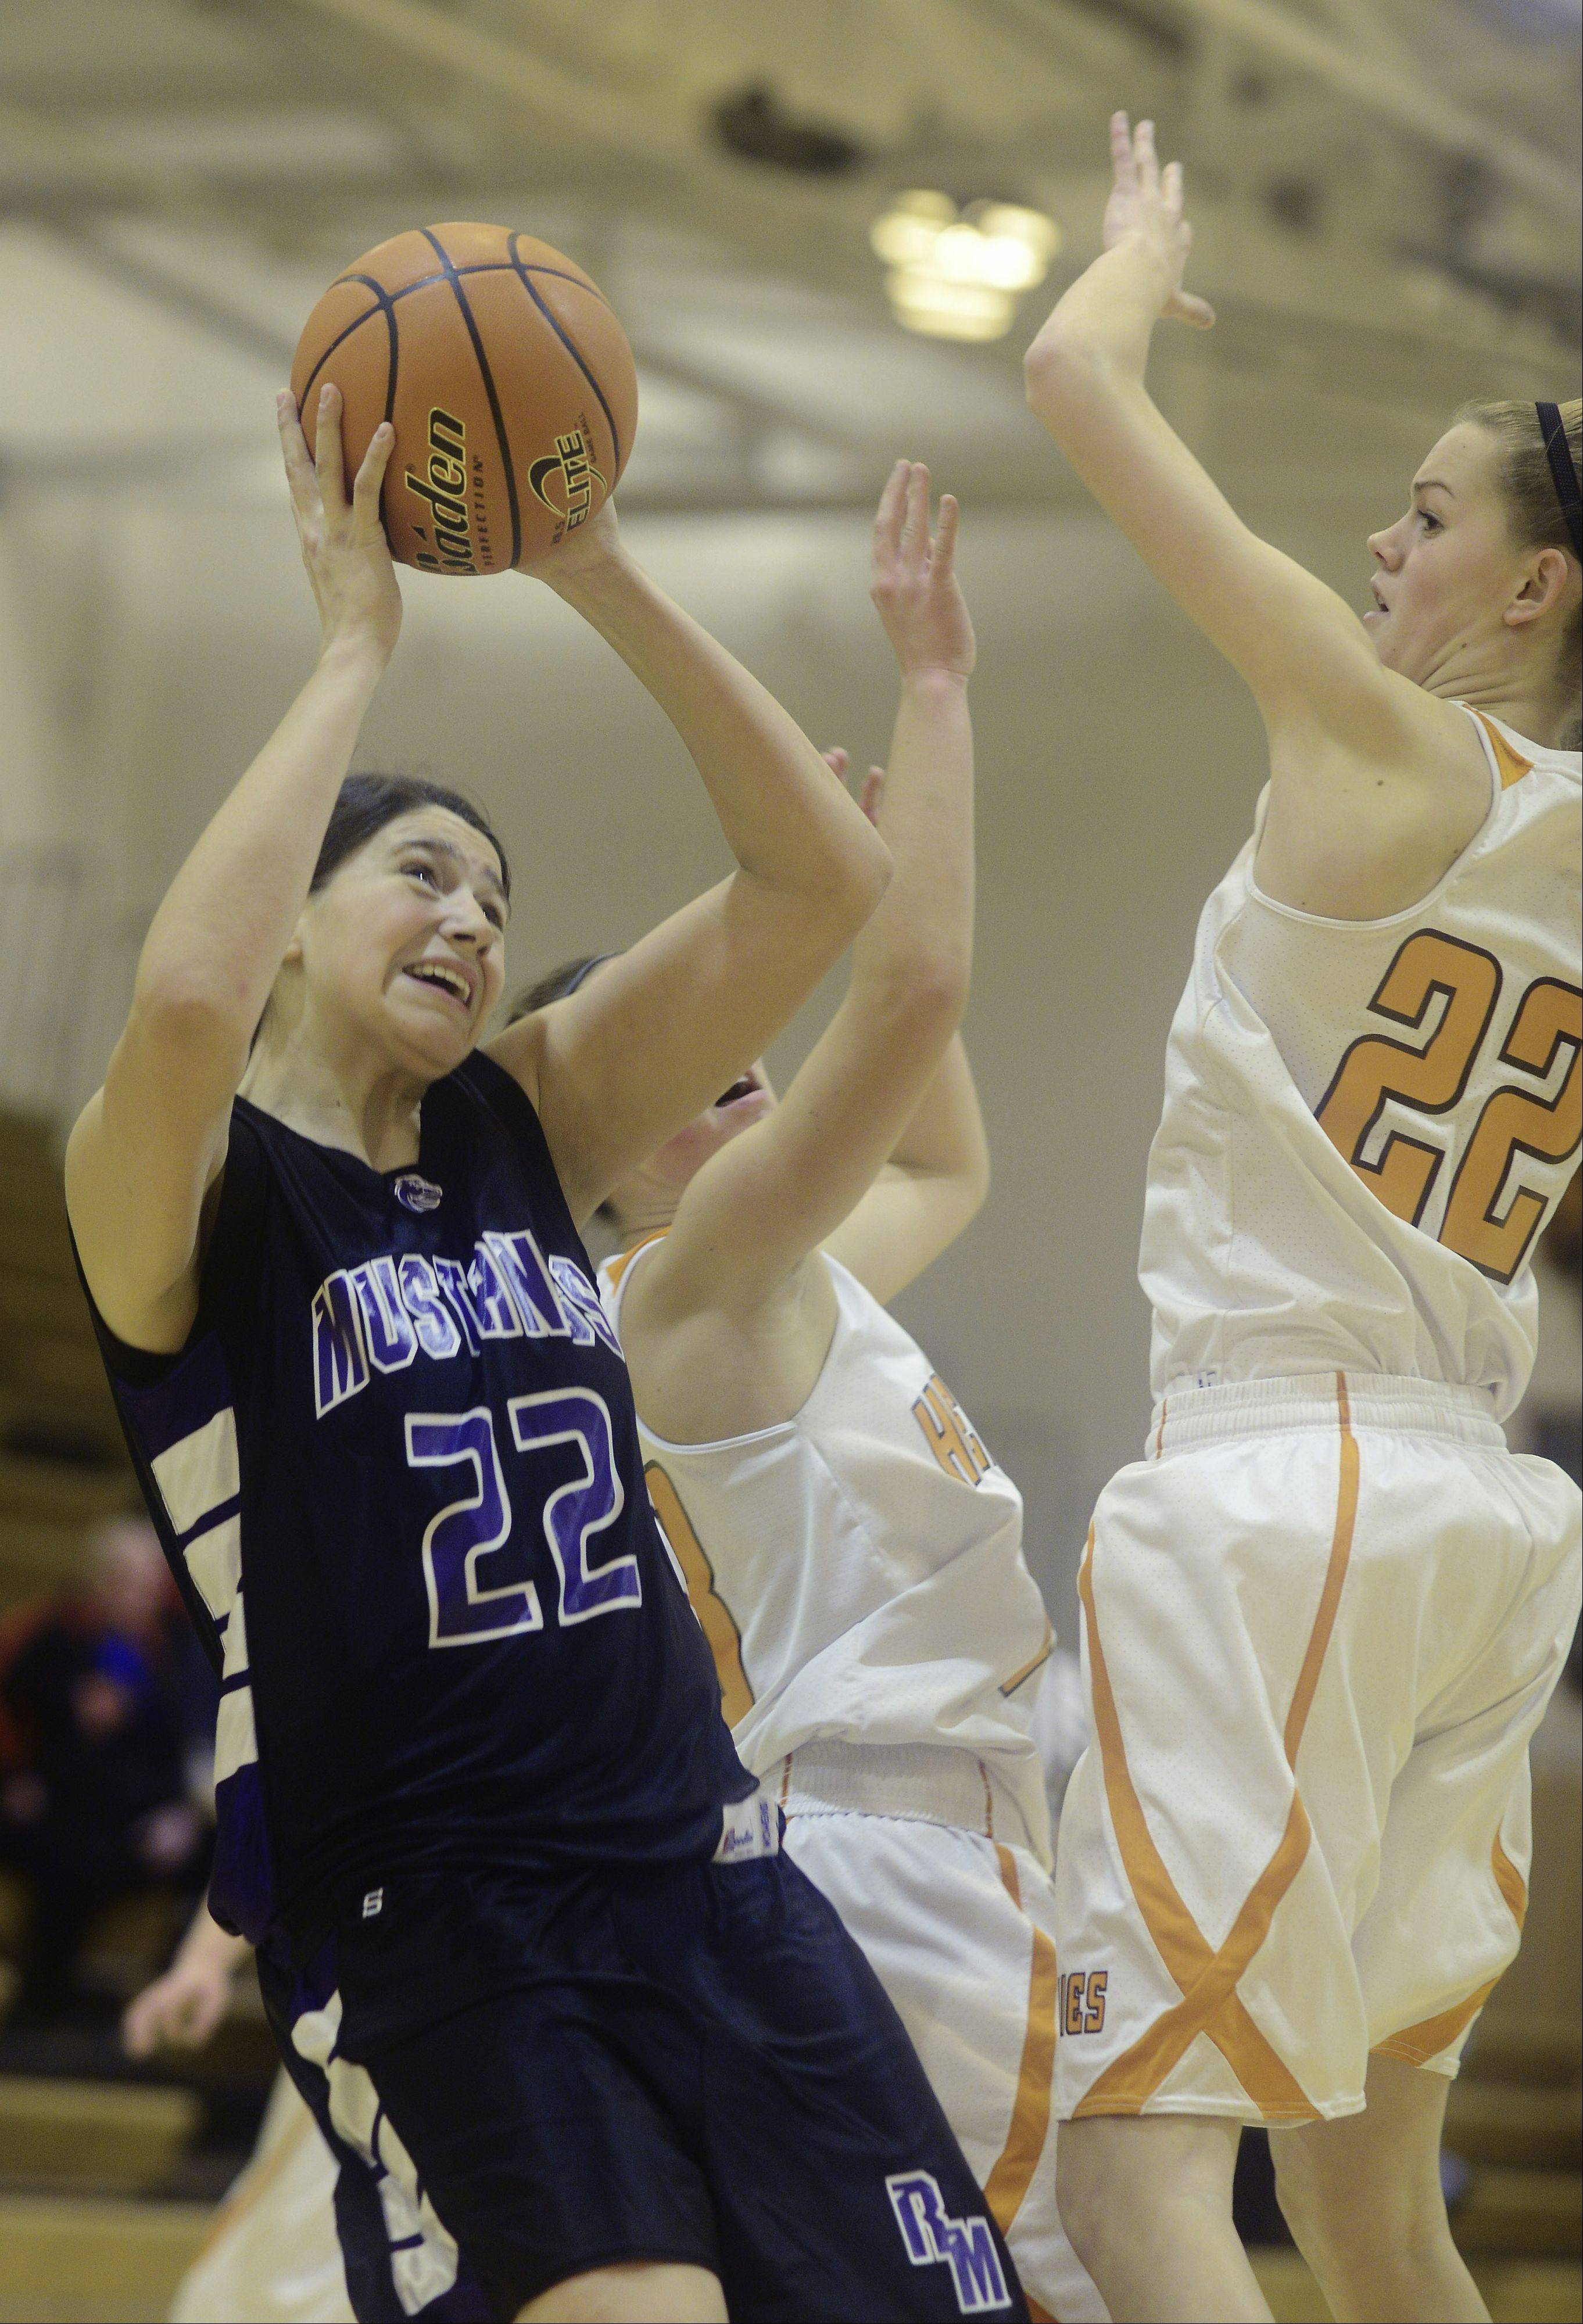 JOE LEWNARD/jlewnard@dailyherald.comRolling Meadows' Ashley Montanez, left, takes a shot against the defense of Hersey's Erica Hill.